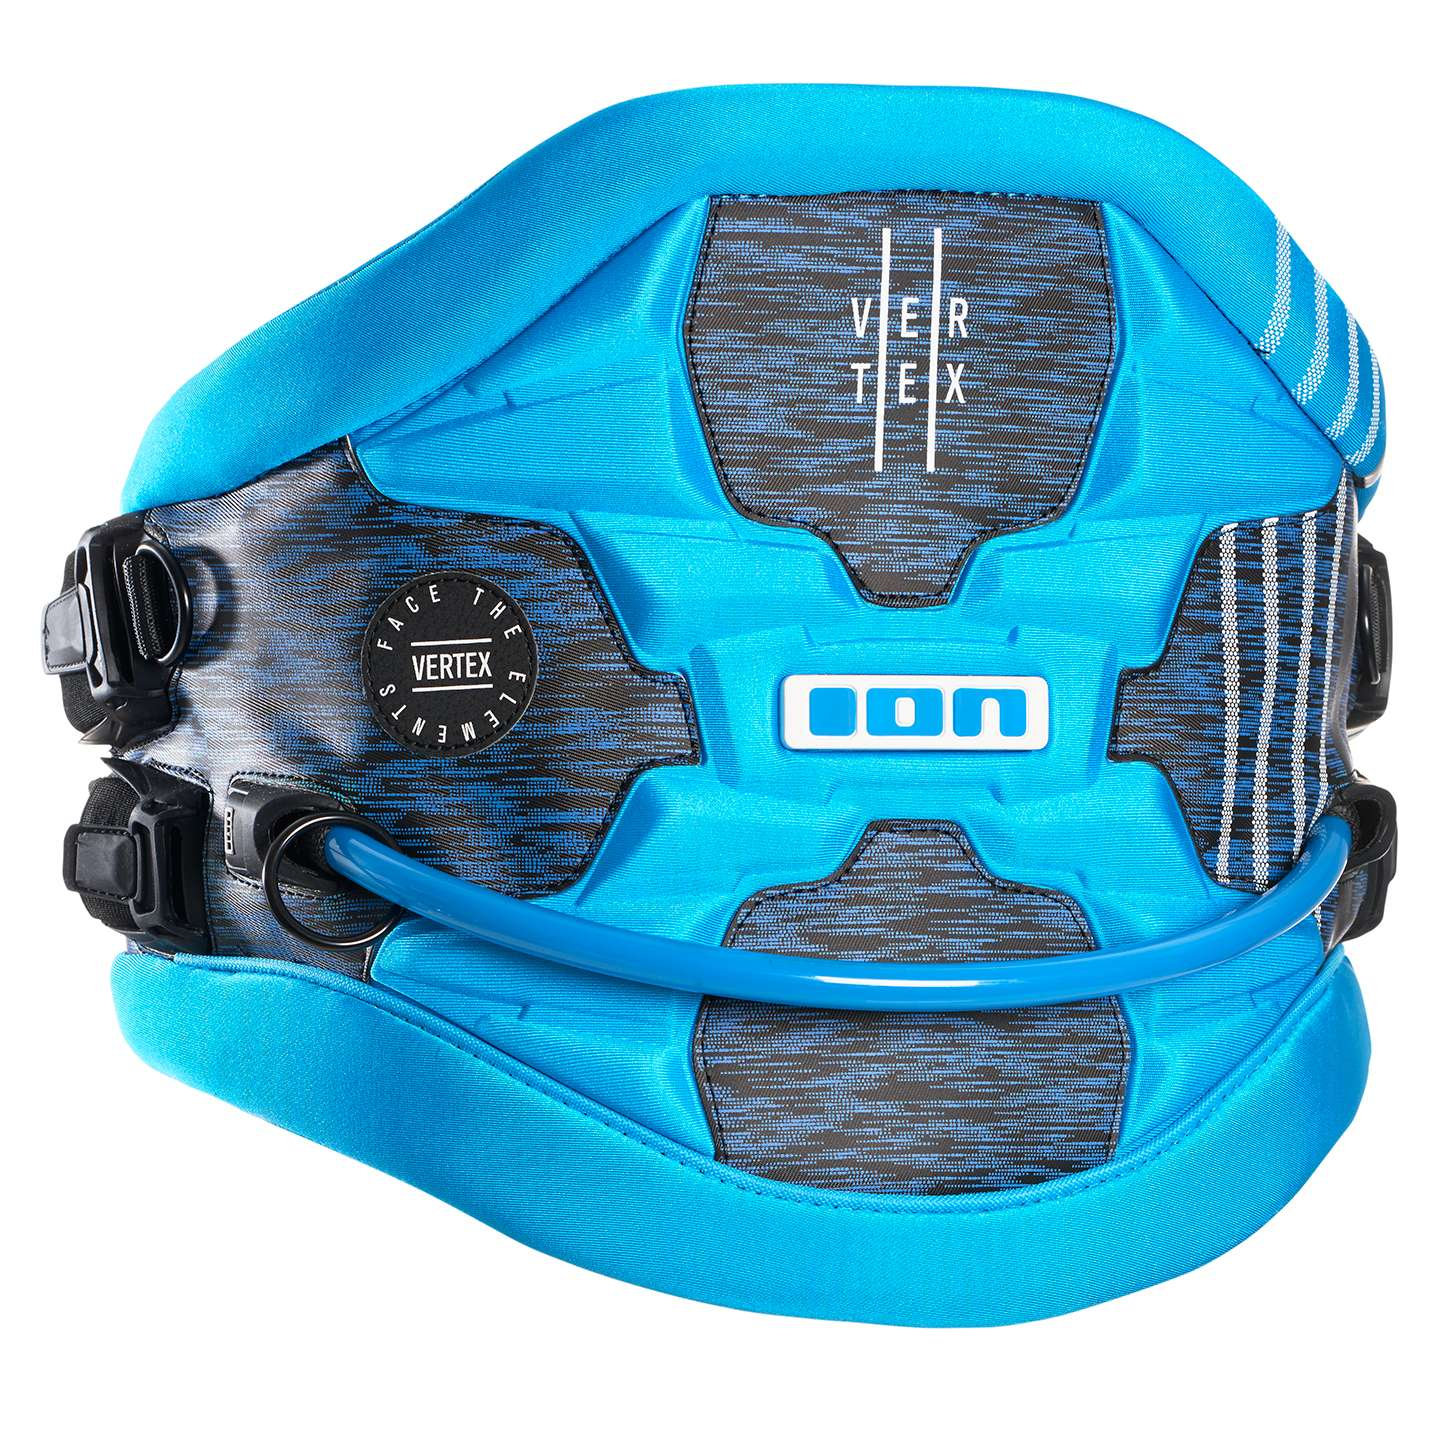 Wakeboards For Sale >> Ion Vertex Kite Waist Harness 2016 | King of Watersports